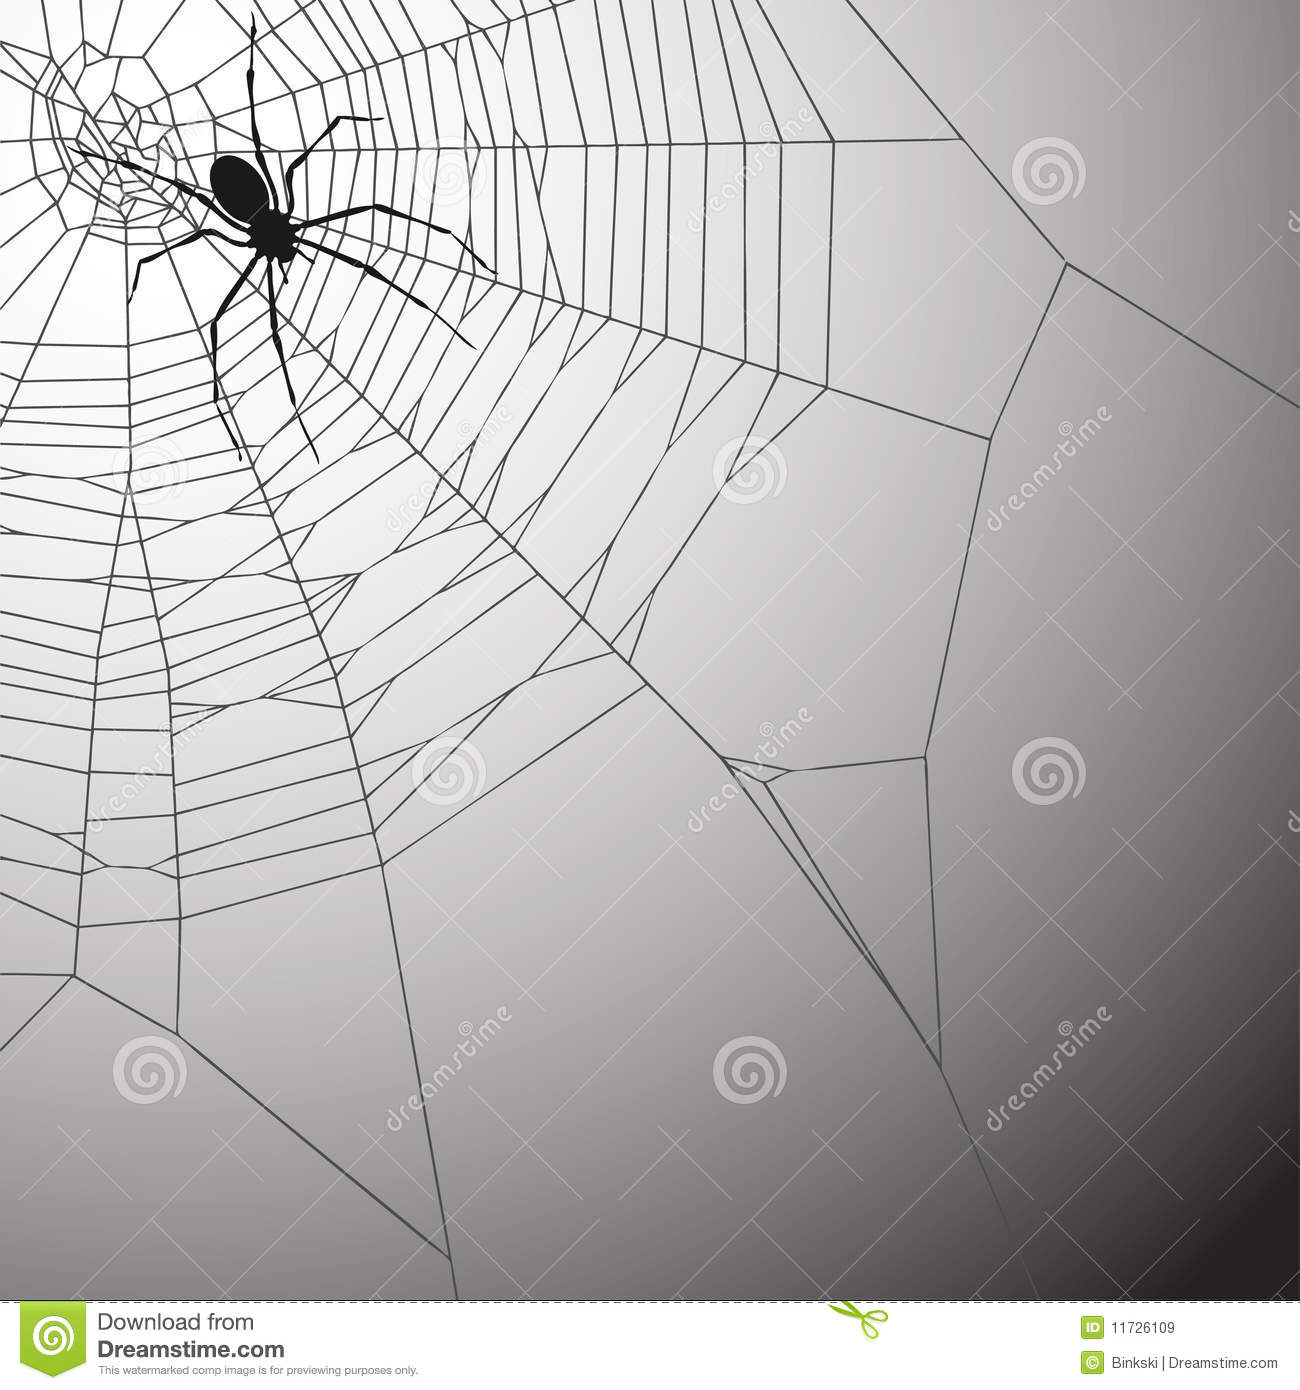 Spiderweb Background Royalty Free Stock Images - Image: 11726109